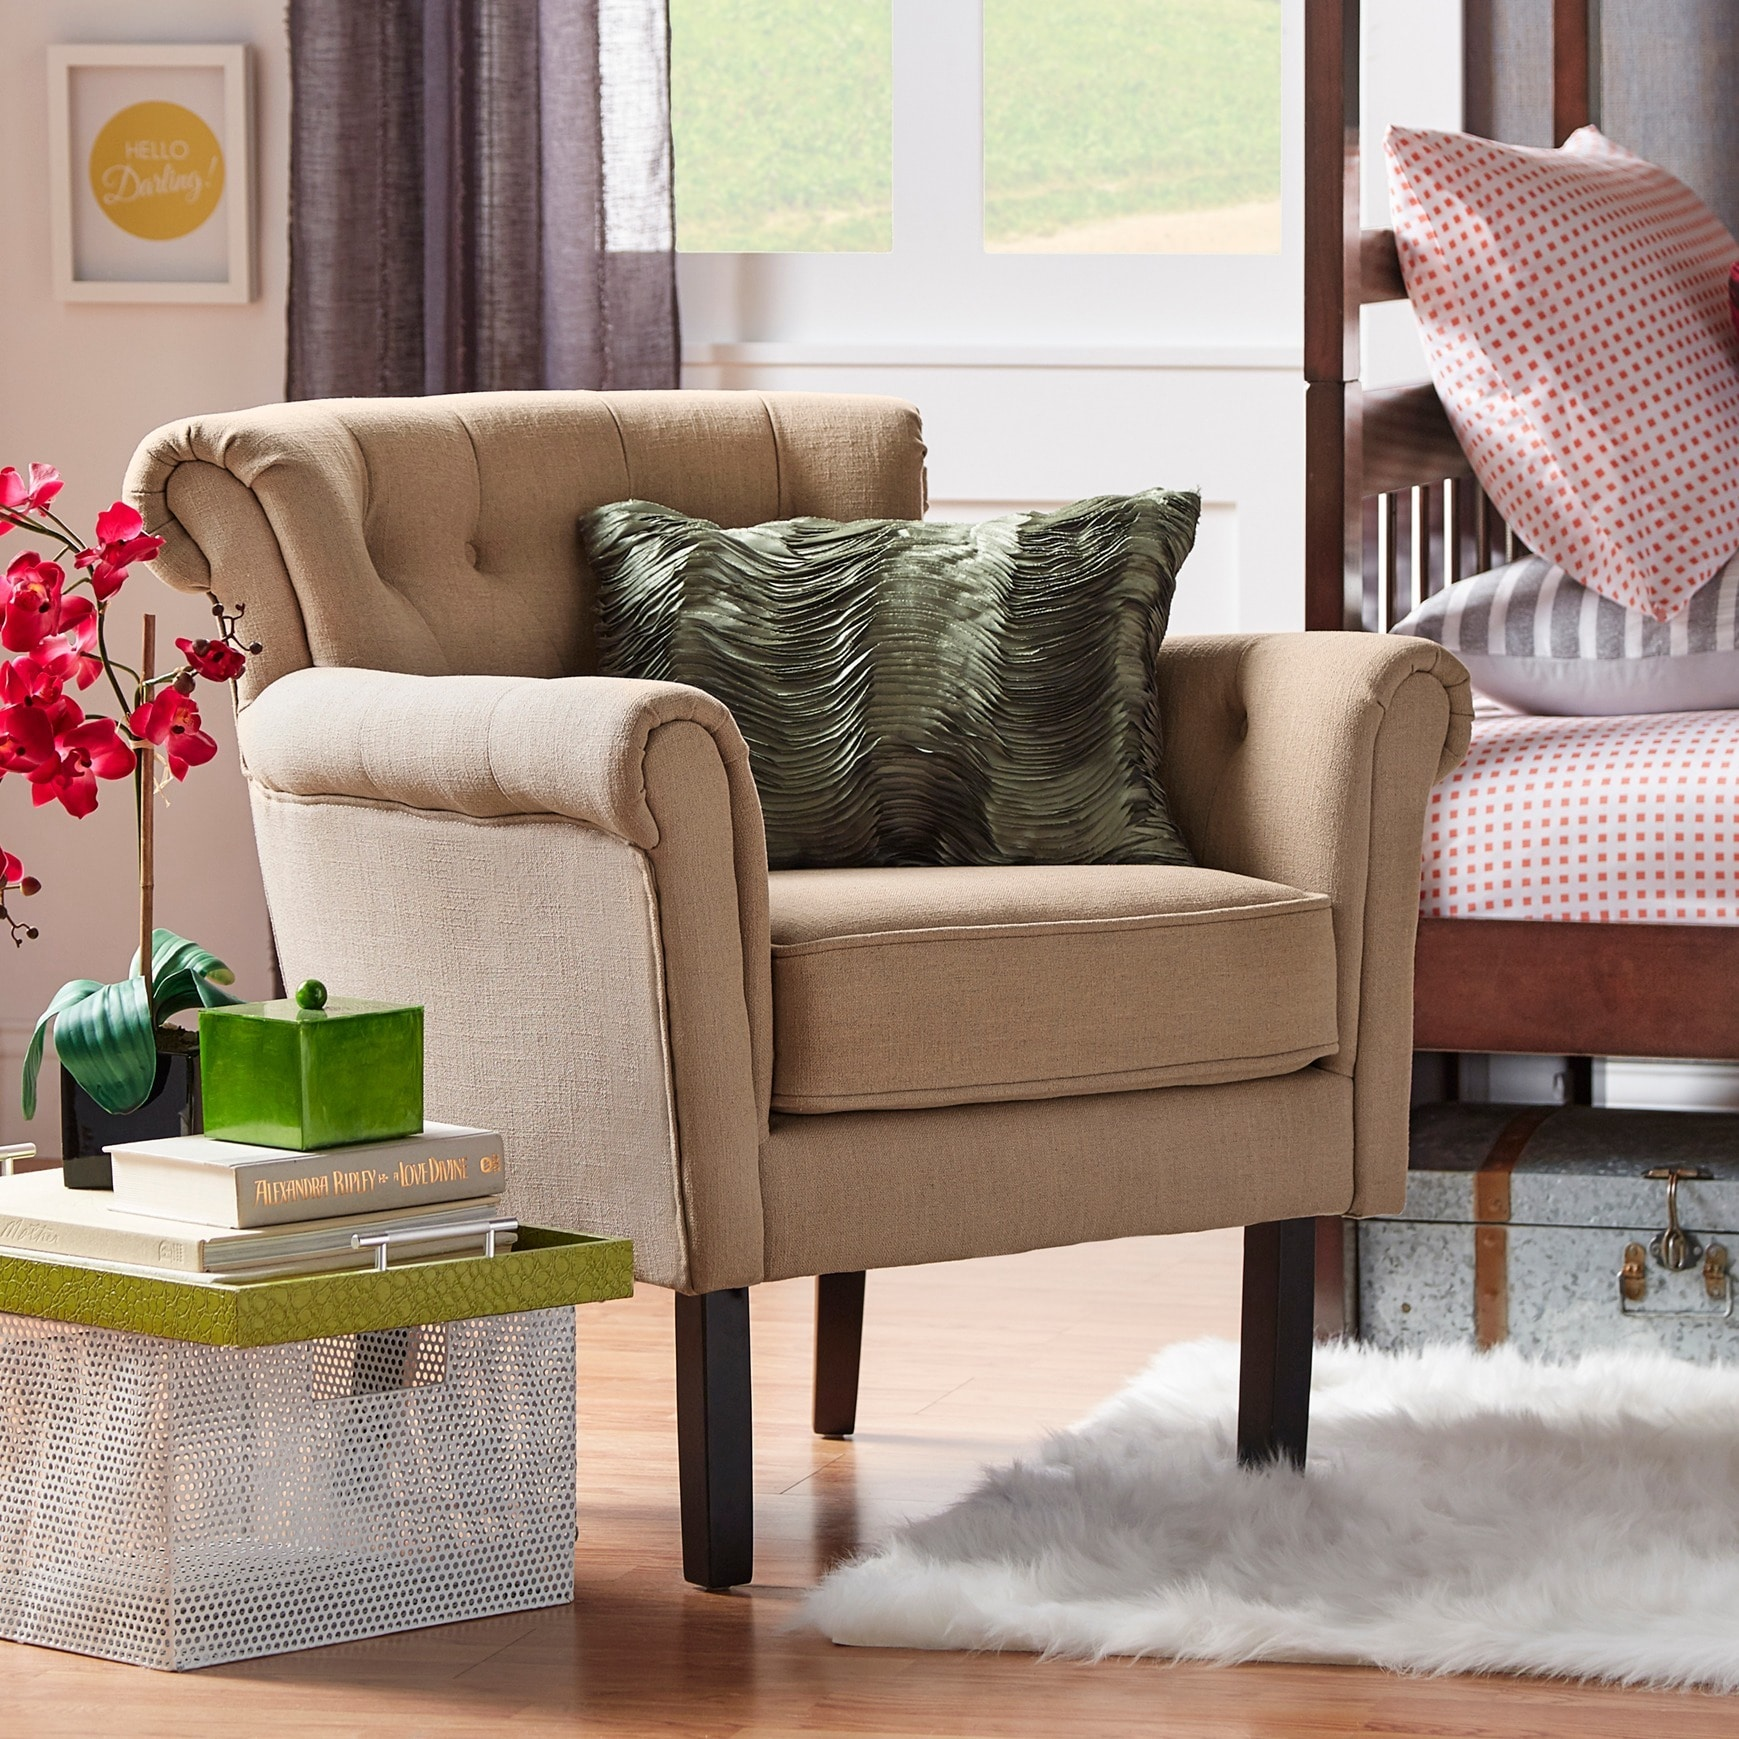 Overstock.com Asher Upholstered Button-tufted Rolled Arm Club Chair